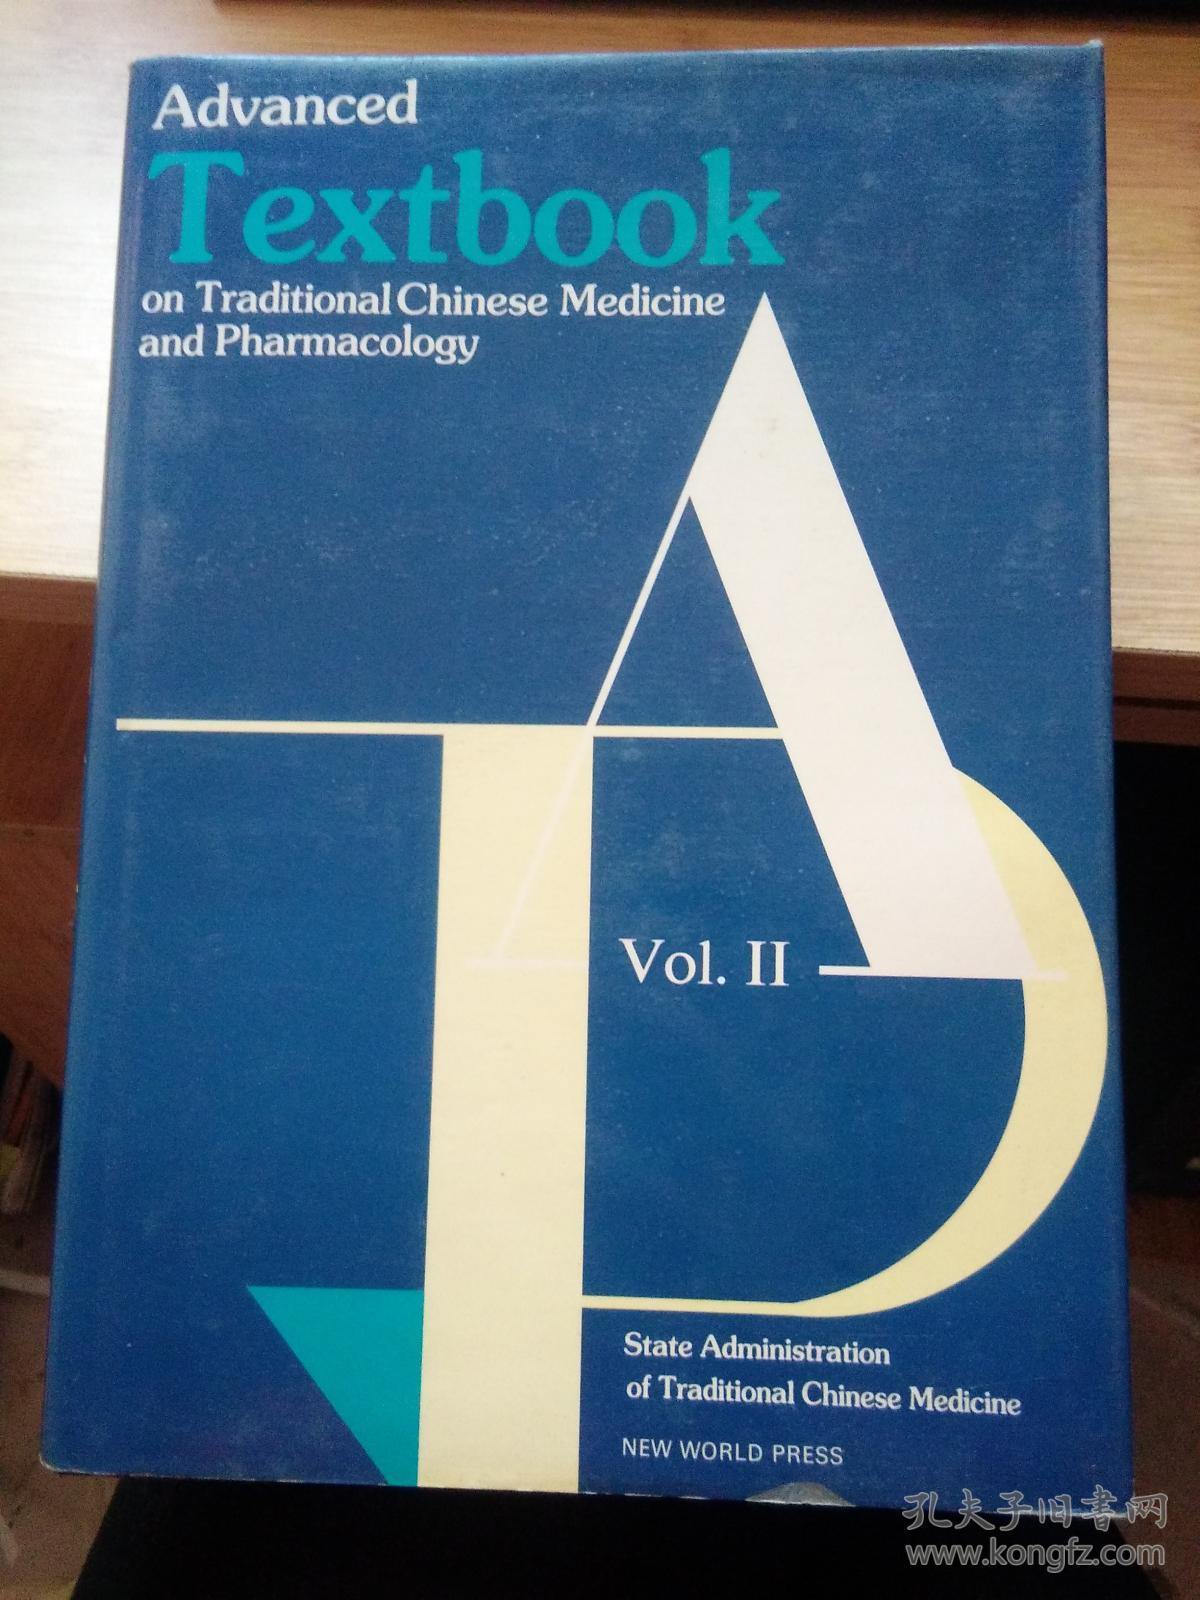 Advanced Textbook on Traditinal Chinese Medicine and Pharmacology Vol.II 中医中药教材第二册